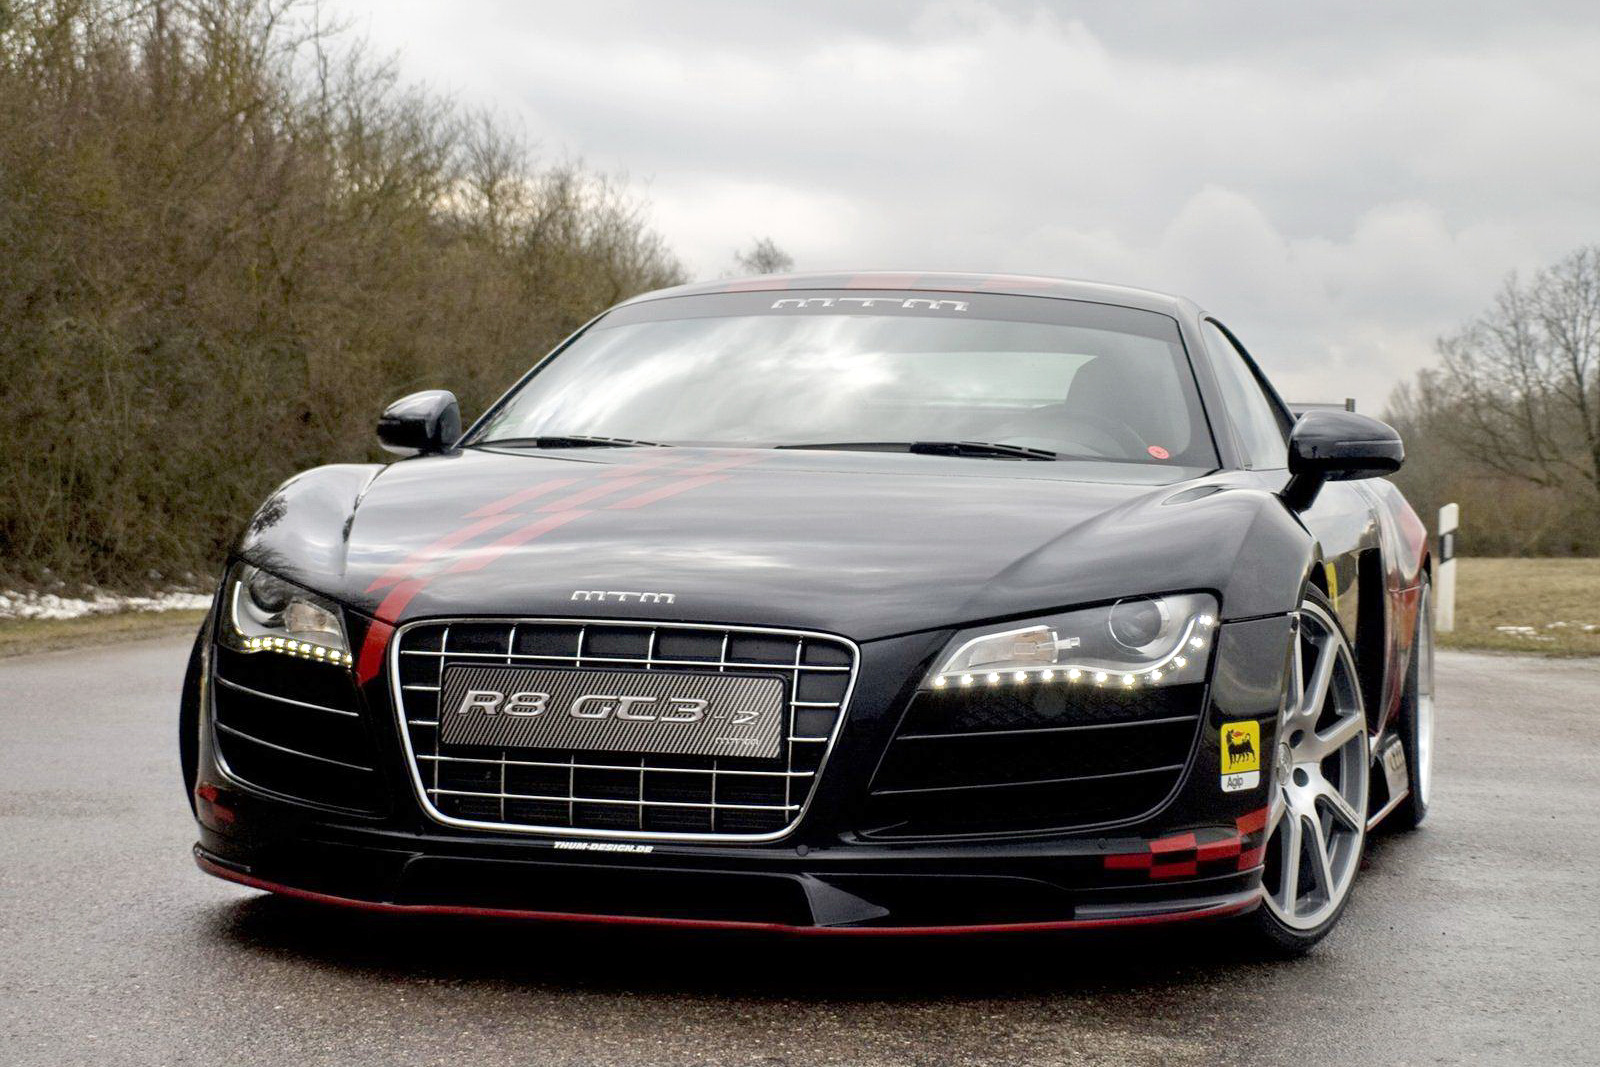 Audi R8 GT3 Black Wallpaper For Background